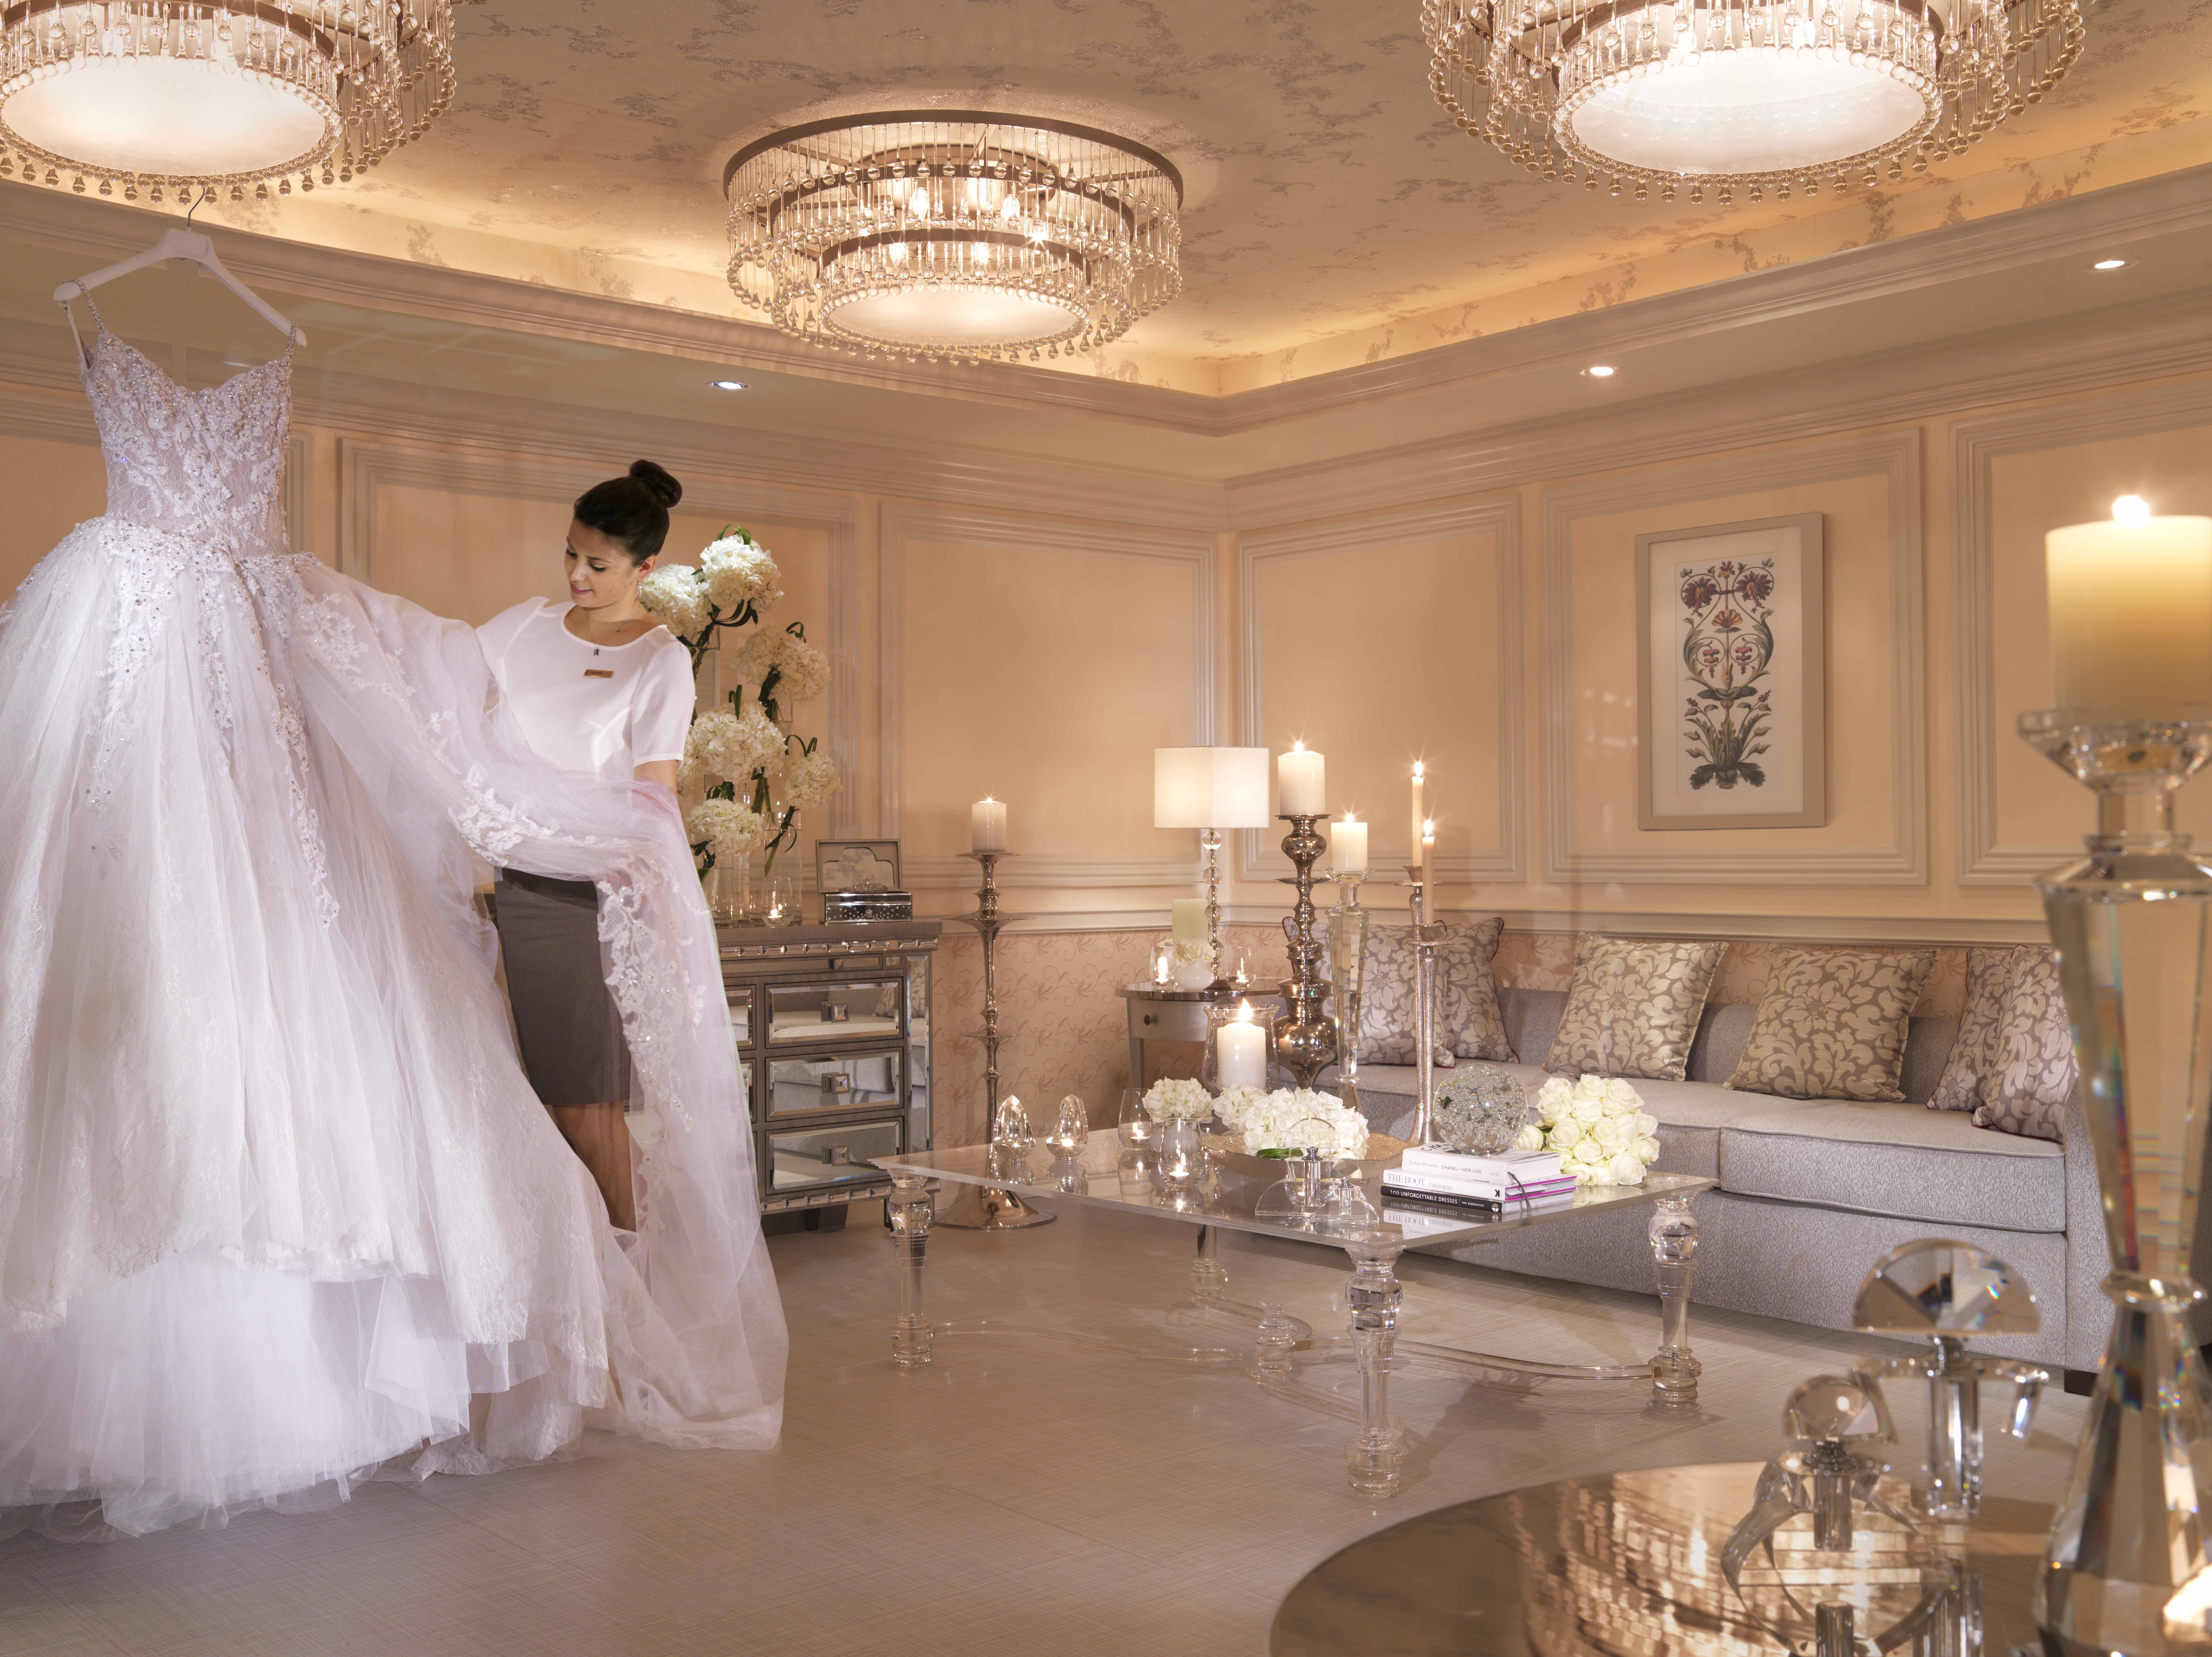 Gorgeous Bridal Boutique Interior A Stunning Dressing Room To Make Every Bride Feel Speci Boutique Interior Boutique Interior Design Bridal Boutique Interior